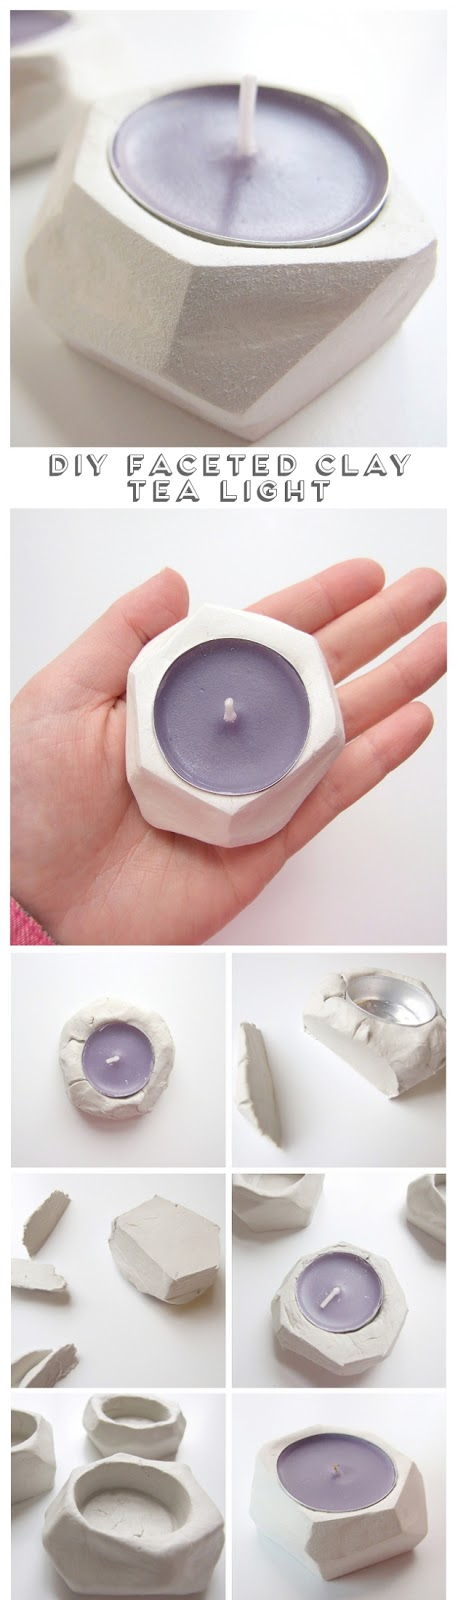 Make these Diy Faceted Clay Tea Light Holders // Click through for full tutorial